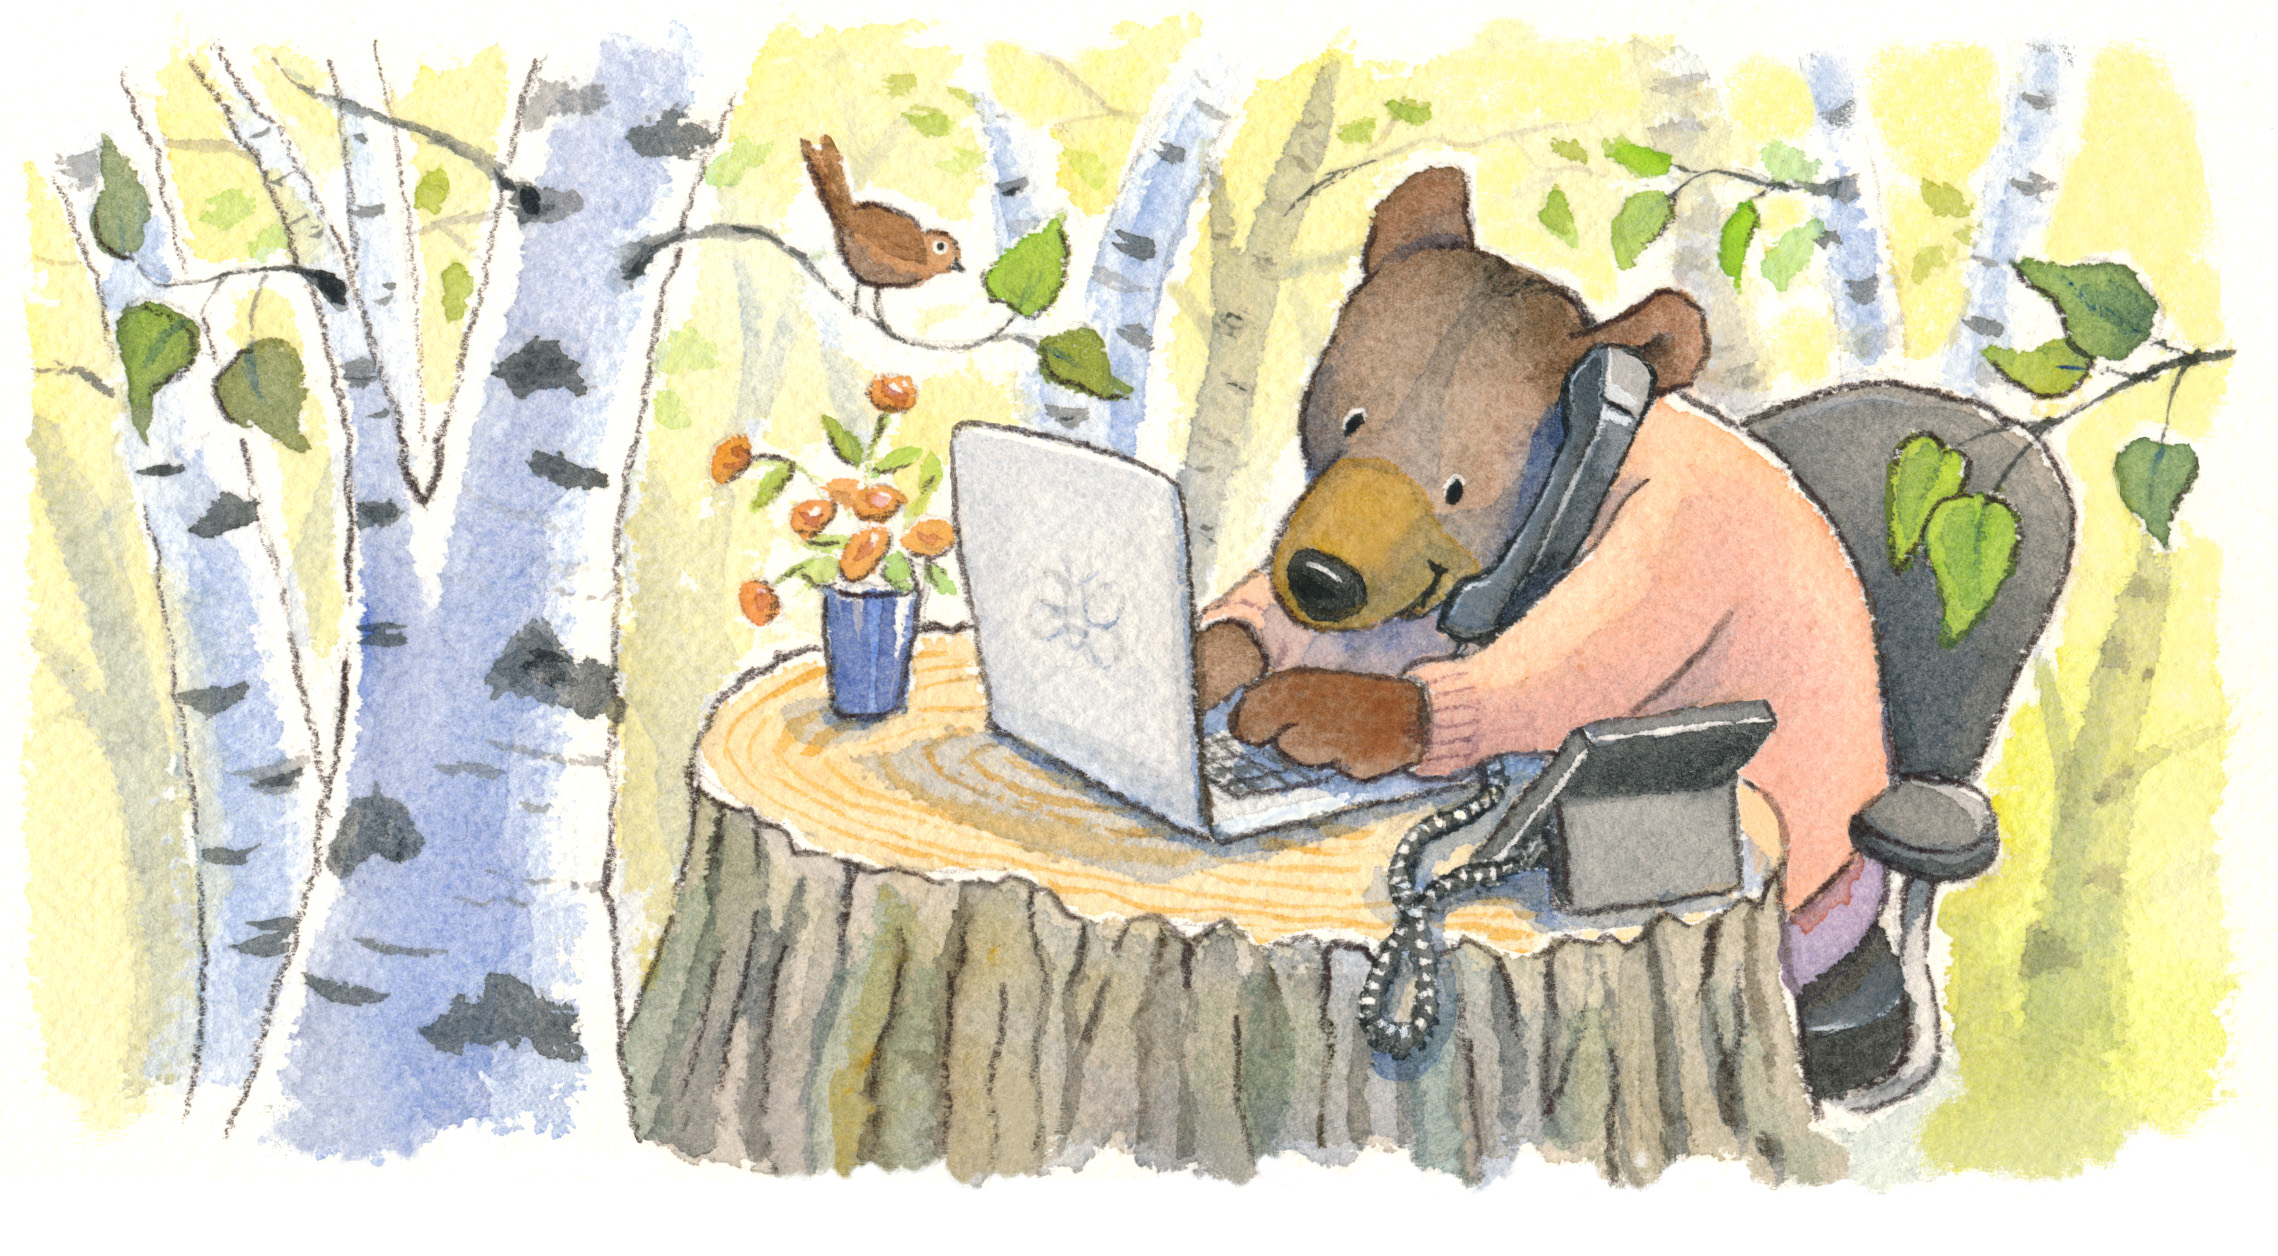 Lauraferraroclose-OfficeBear.jpg